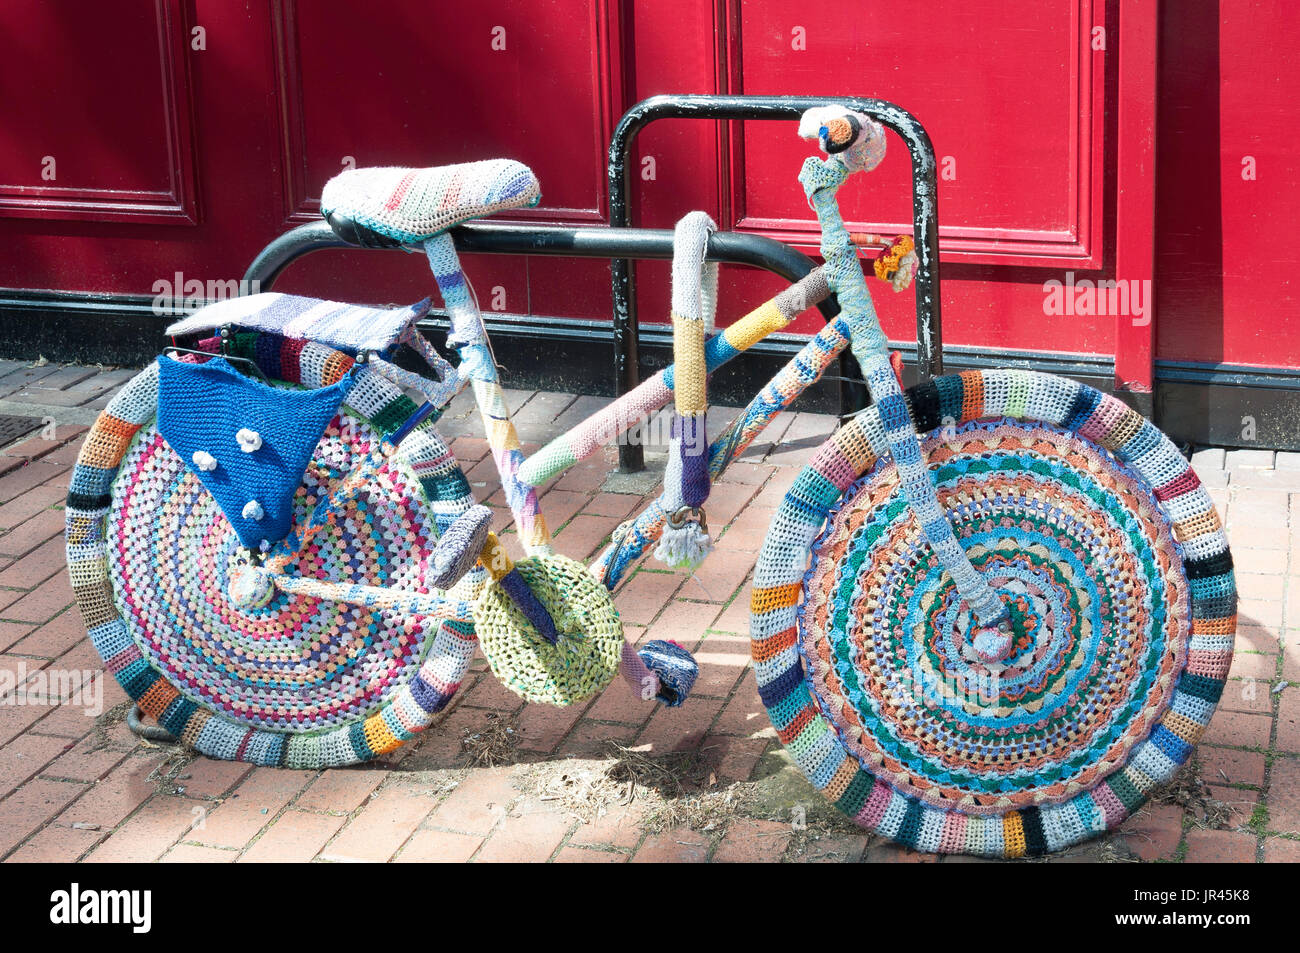 Woollen crafted bicycle outside Brazil's Cafe, Market Square, Chesham, Buckinghamshire, England, United Kingdom - Stock Image